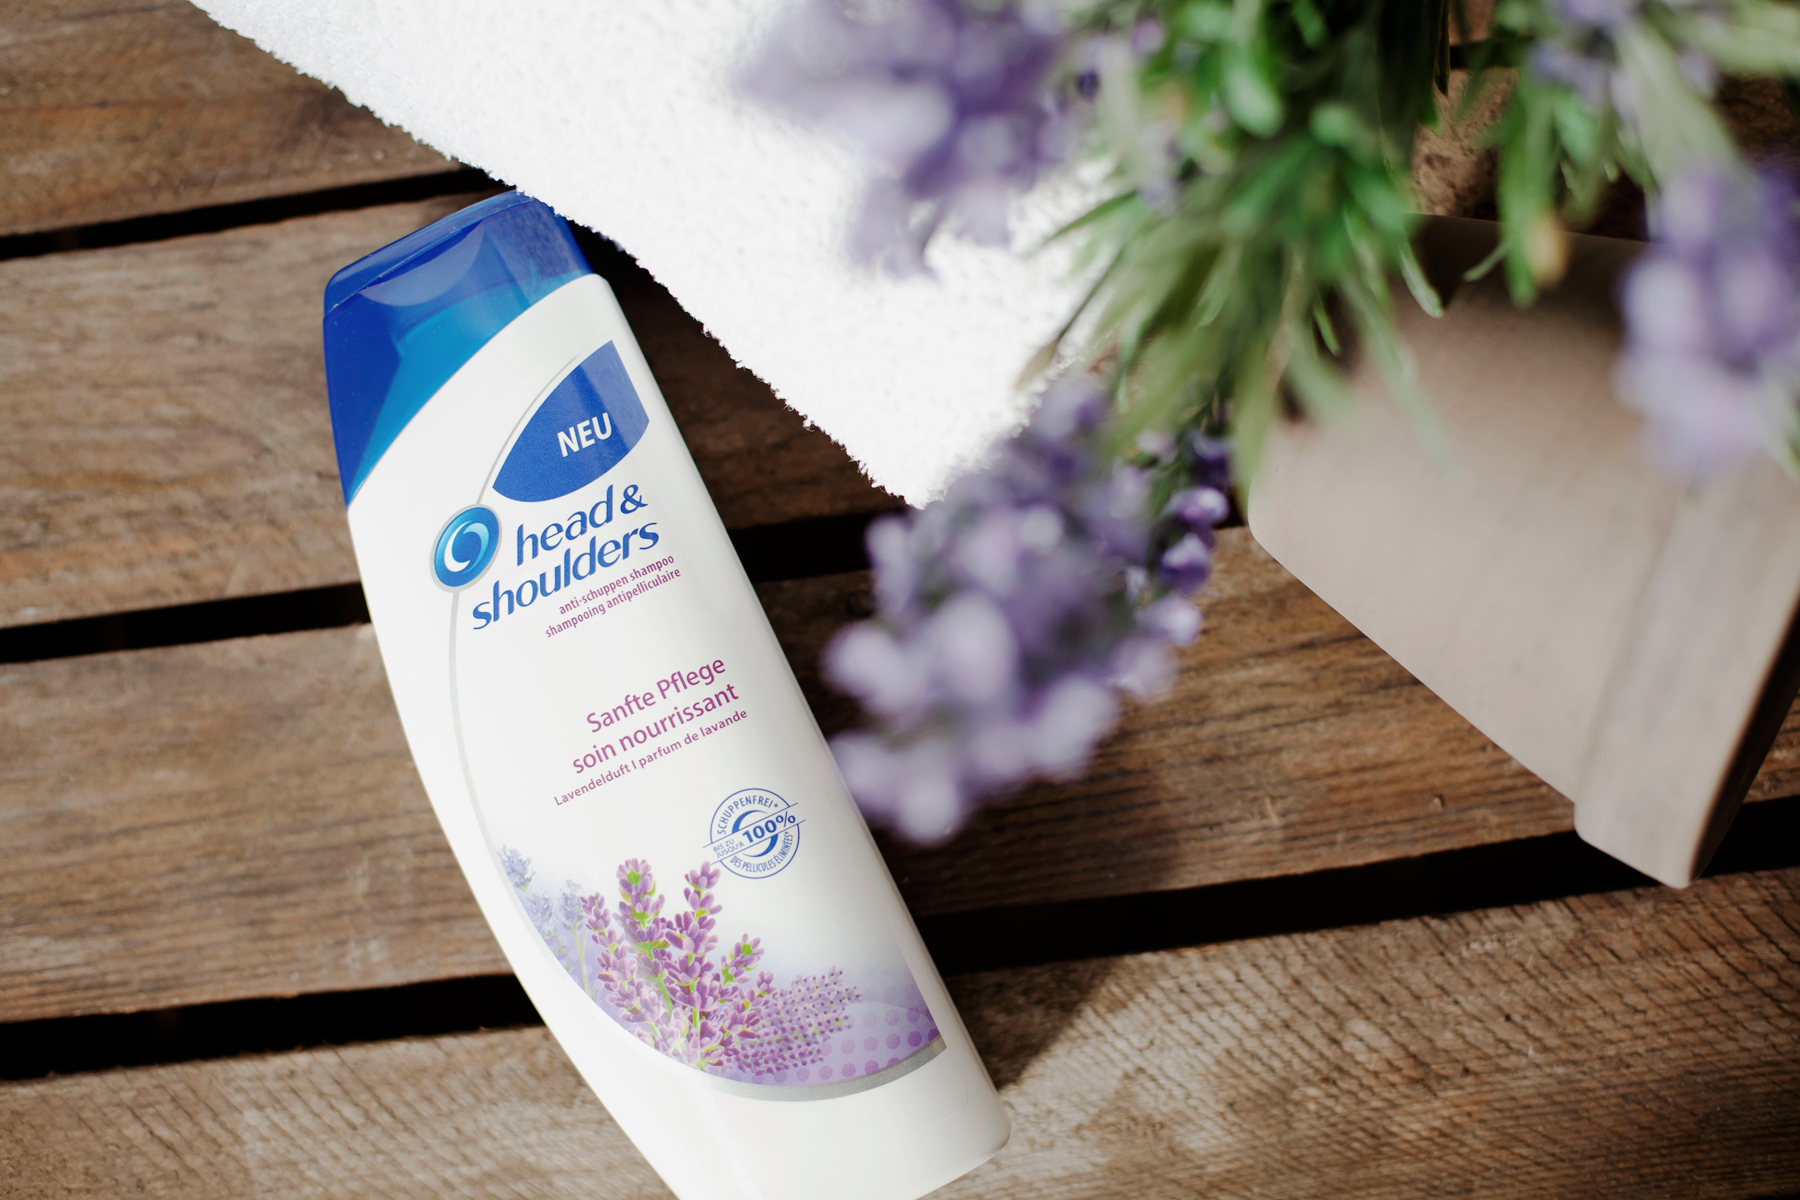 head & shoulders sanfte pflege lavendelduft lavendel lavender scent soin doux beauty beautyblogger product review haircare hair care antischuppen shampoo cats & dogs blog wie hund und katze ricarda schernus blogger düsseldorf berlin 3